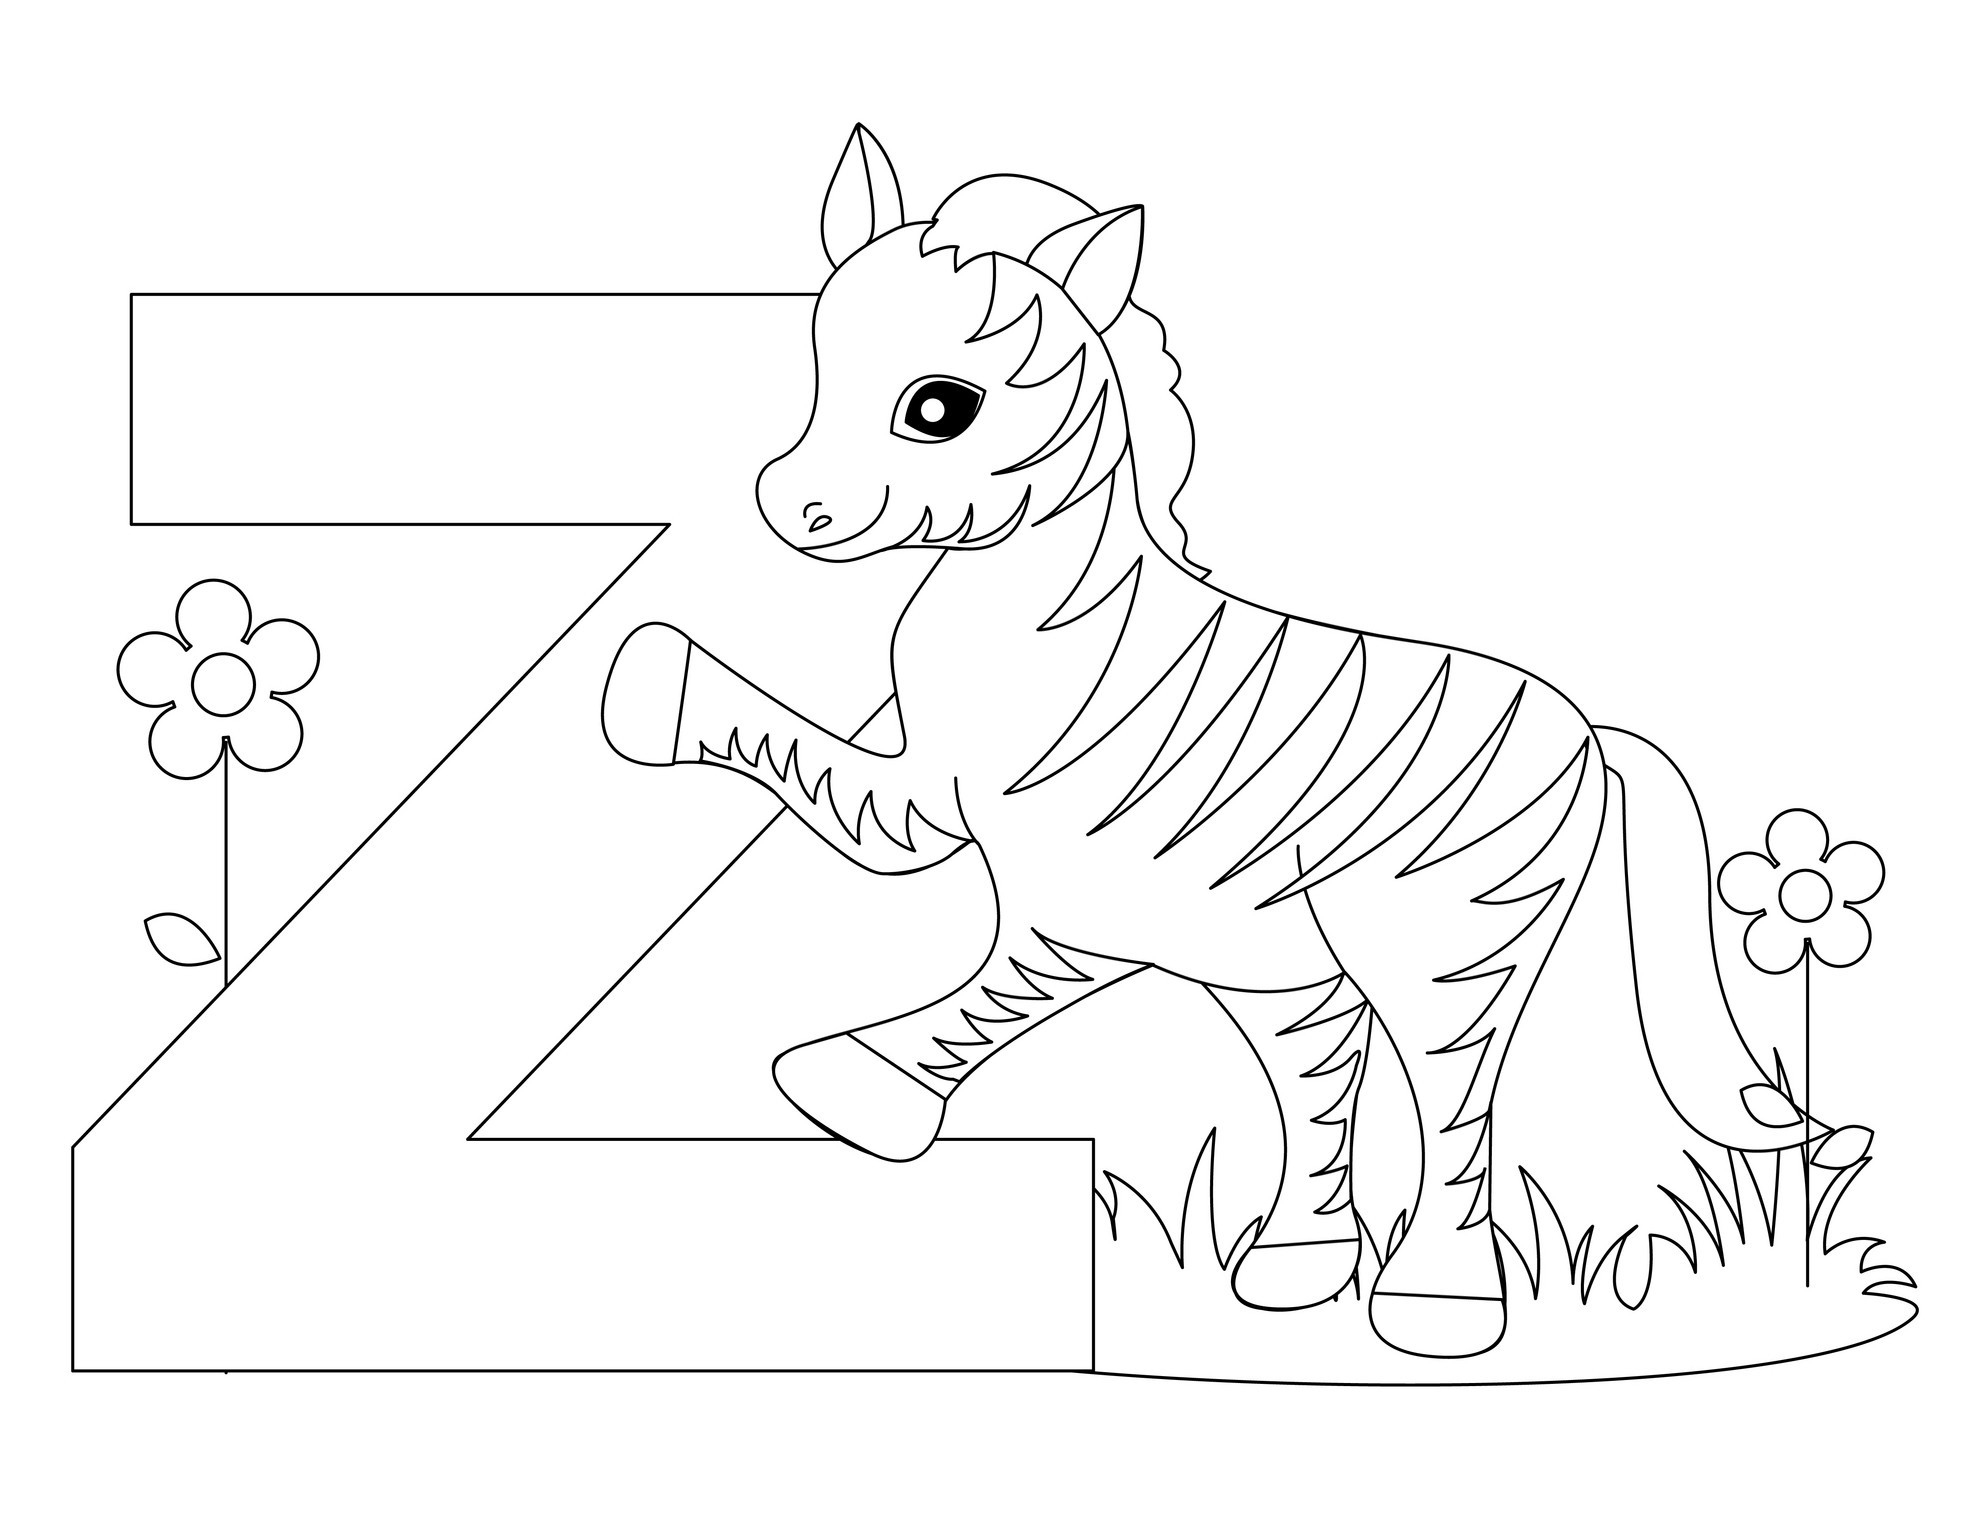 the letter z coloring pages - photo#10